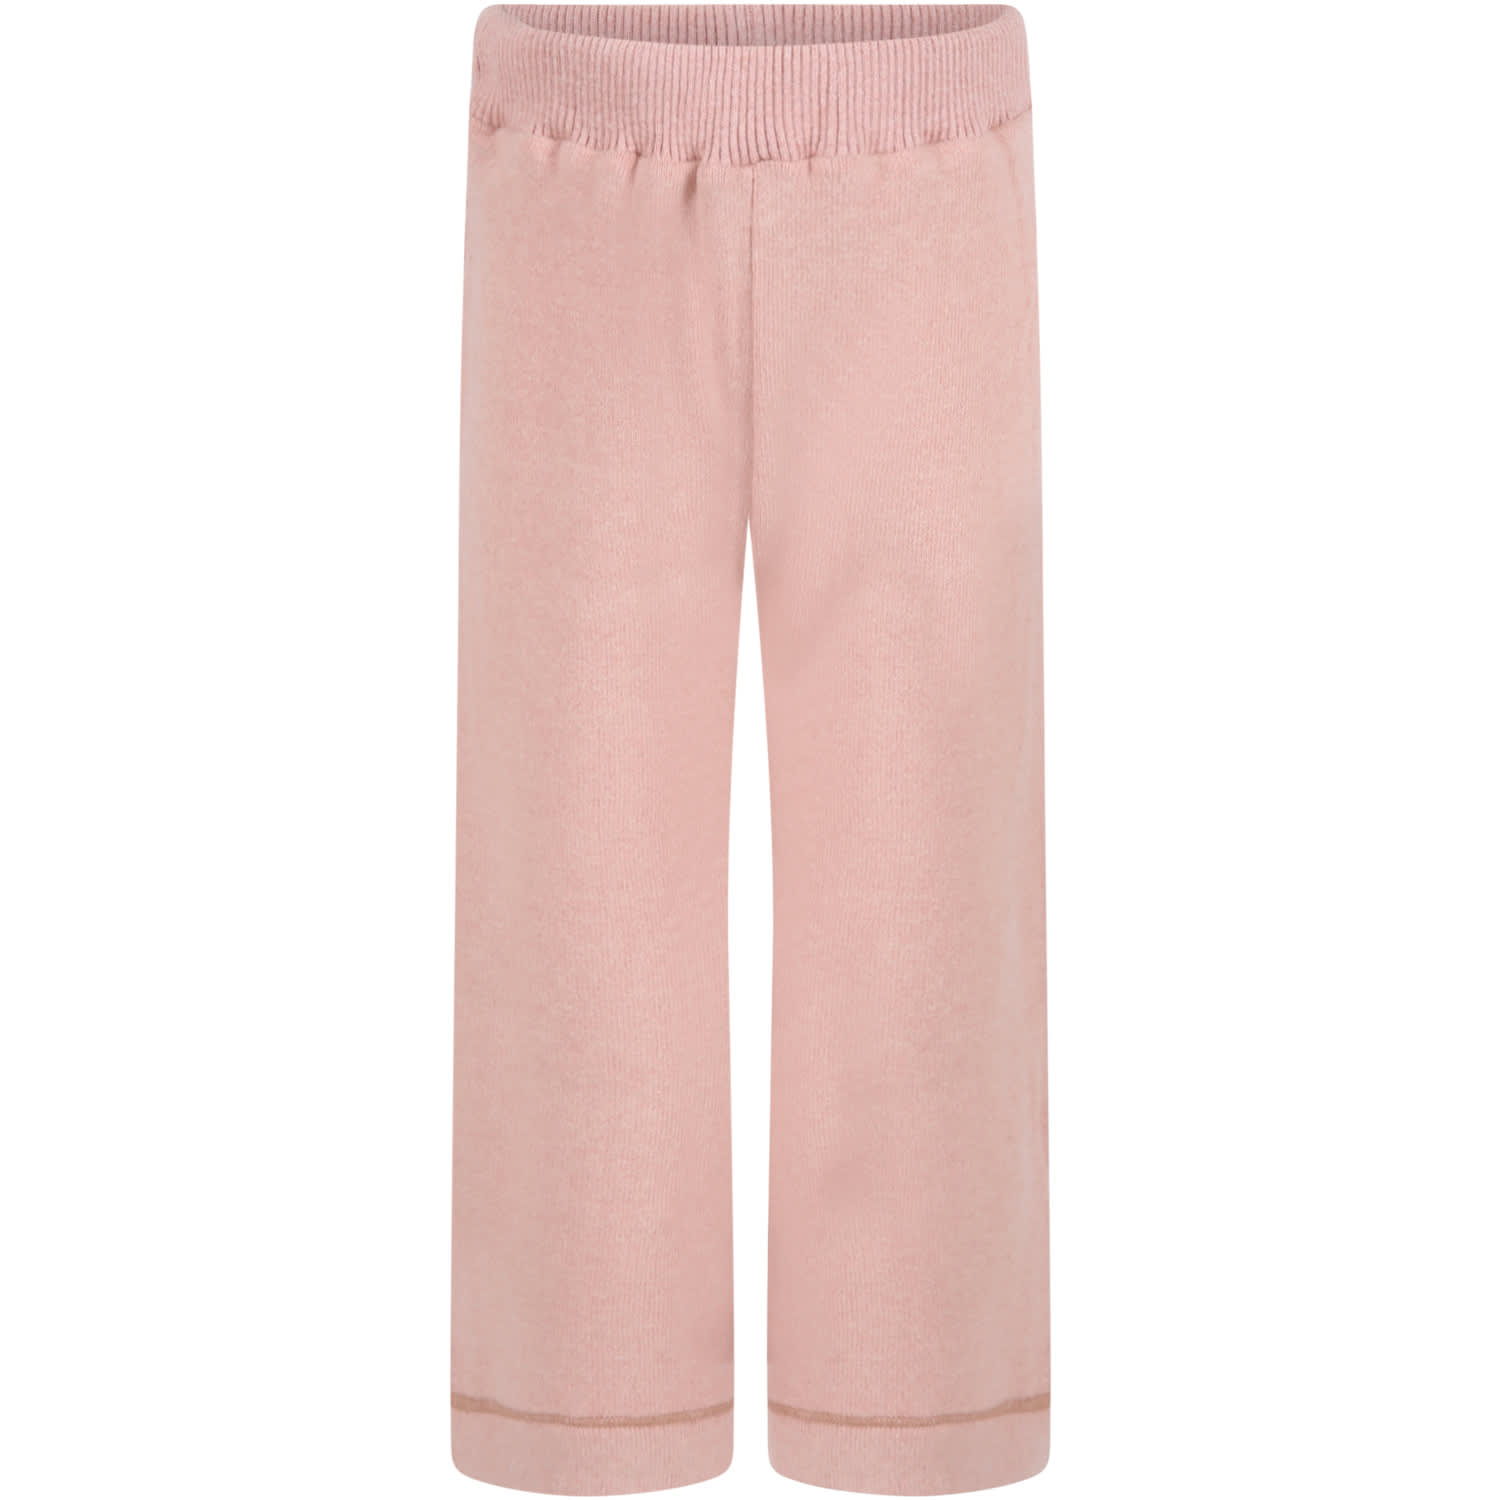 Caffe dOrzo Pink denise Trousers For Girl